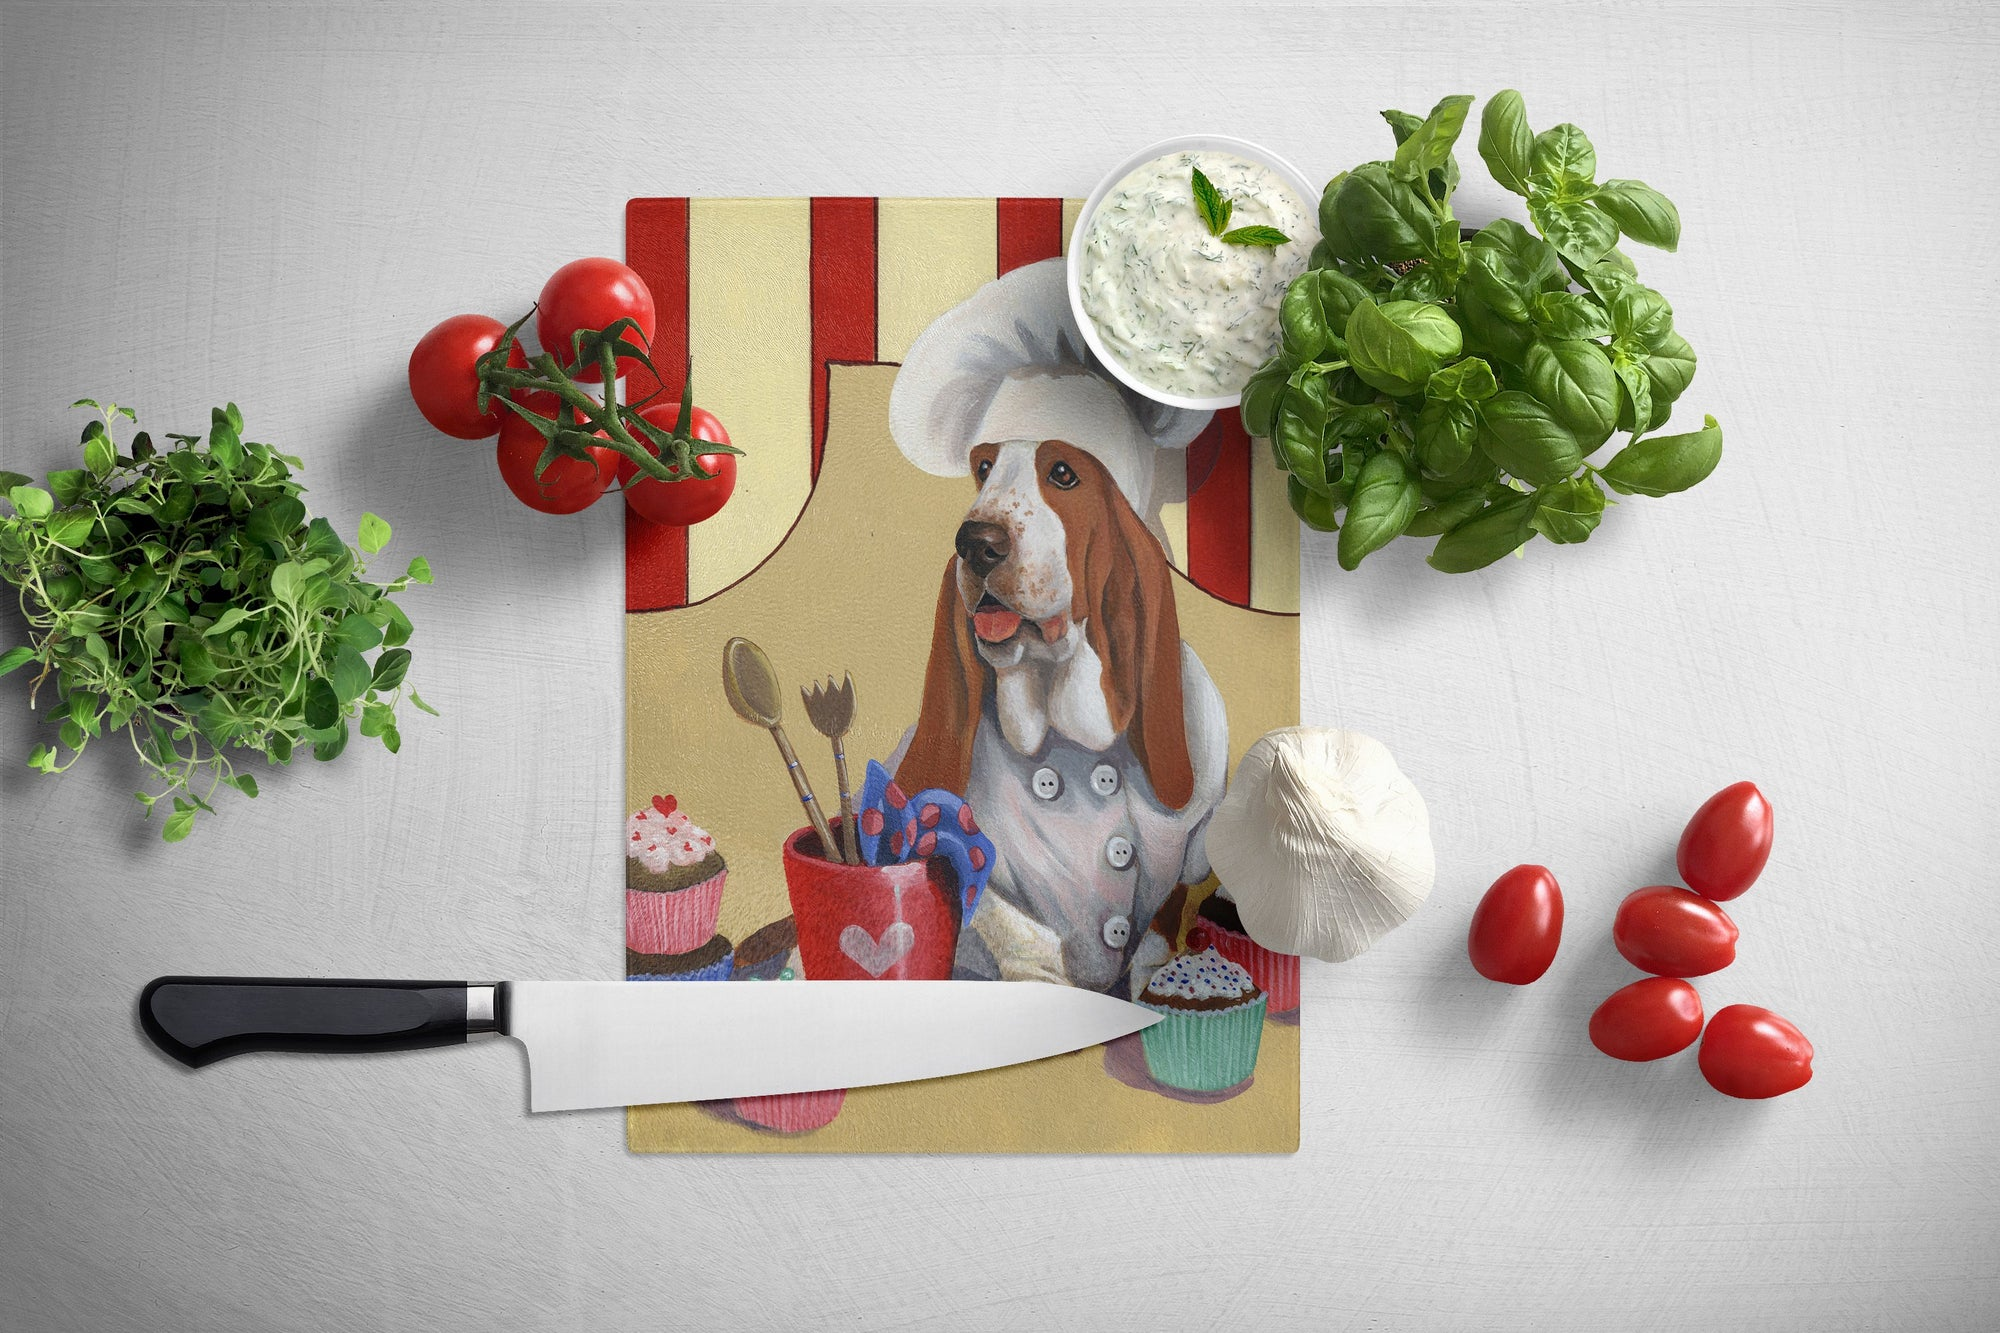 Basset Hound Cupcake Hound Glass Cutting Board Large PPP3011LCB by Caroline's Treasures